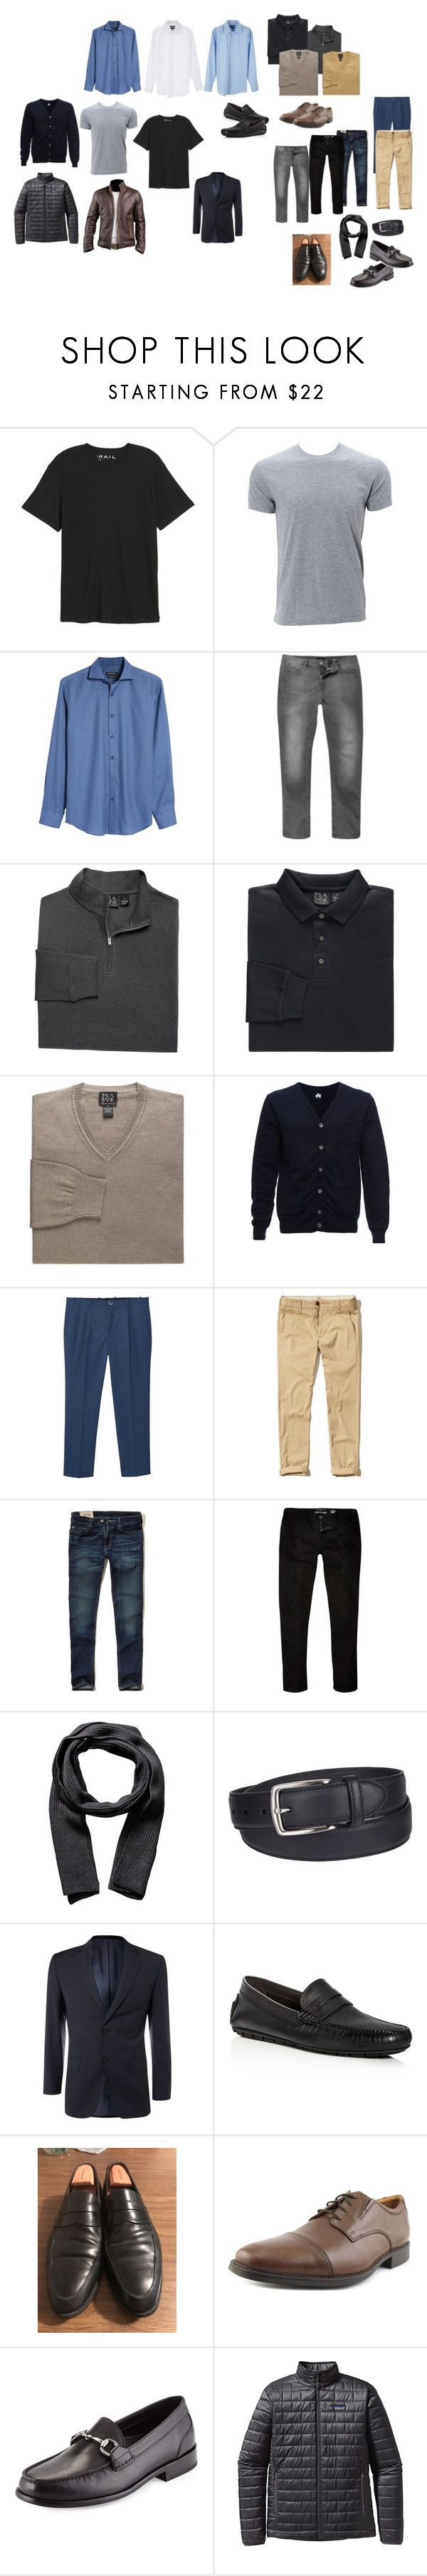 """#2"" by chumiller22 on Polyvore featuring Public Opinion, Simplex Apparel, Bugatchi, Altalana, MANGO MAN, Hollister Co., River Island, Portolano, Columbia and To Boot New York"